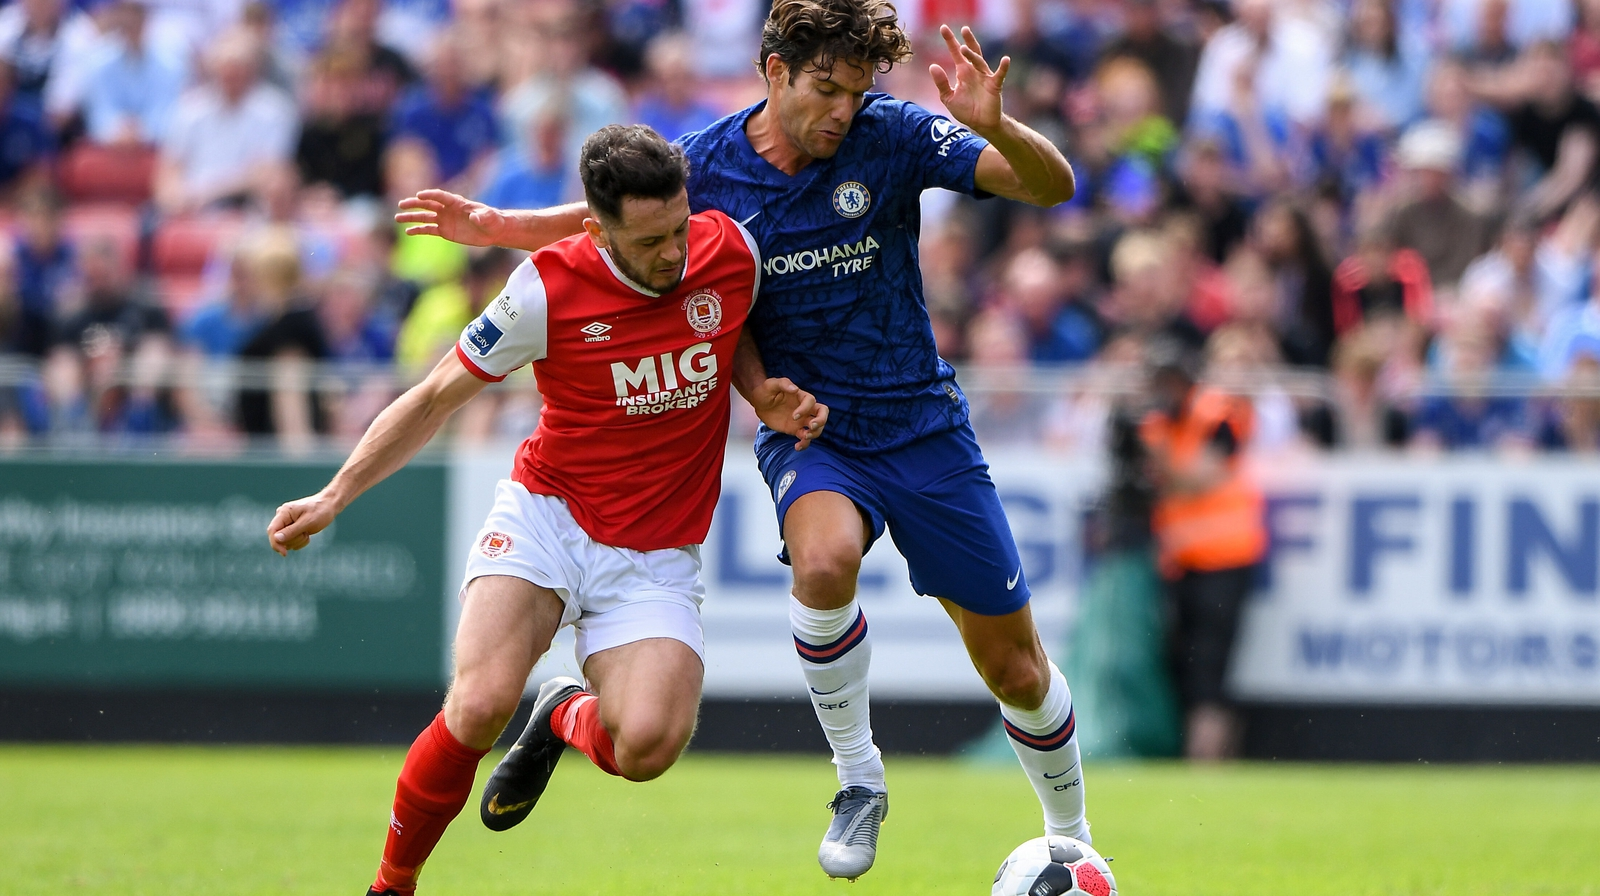 Image - Eric Molloy fends off Chelsea's Marcos Alonso during pre-season this year